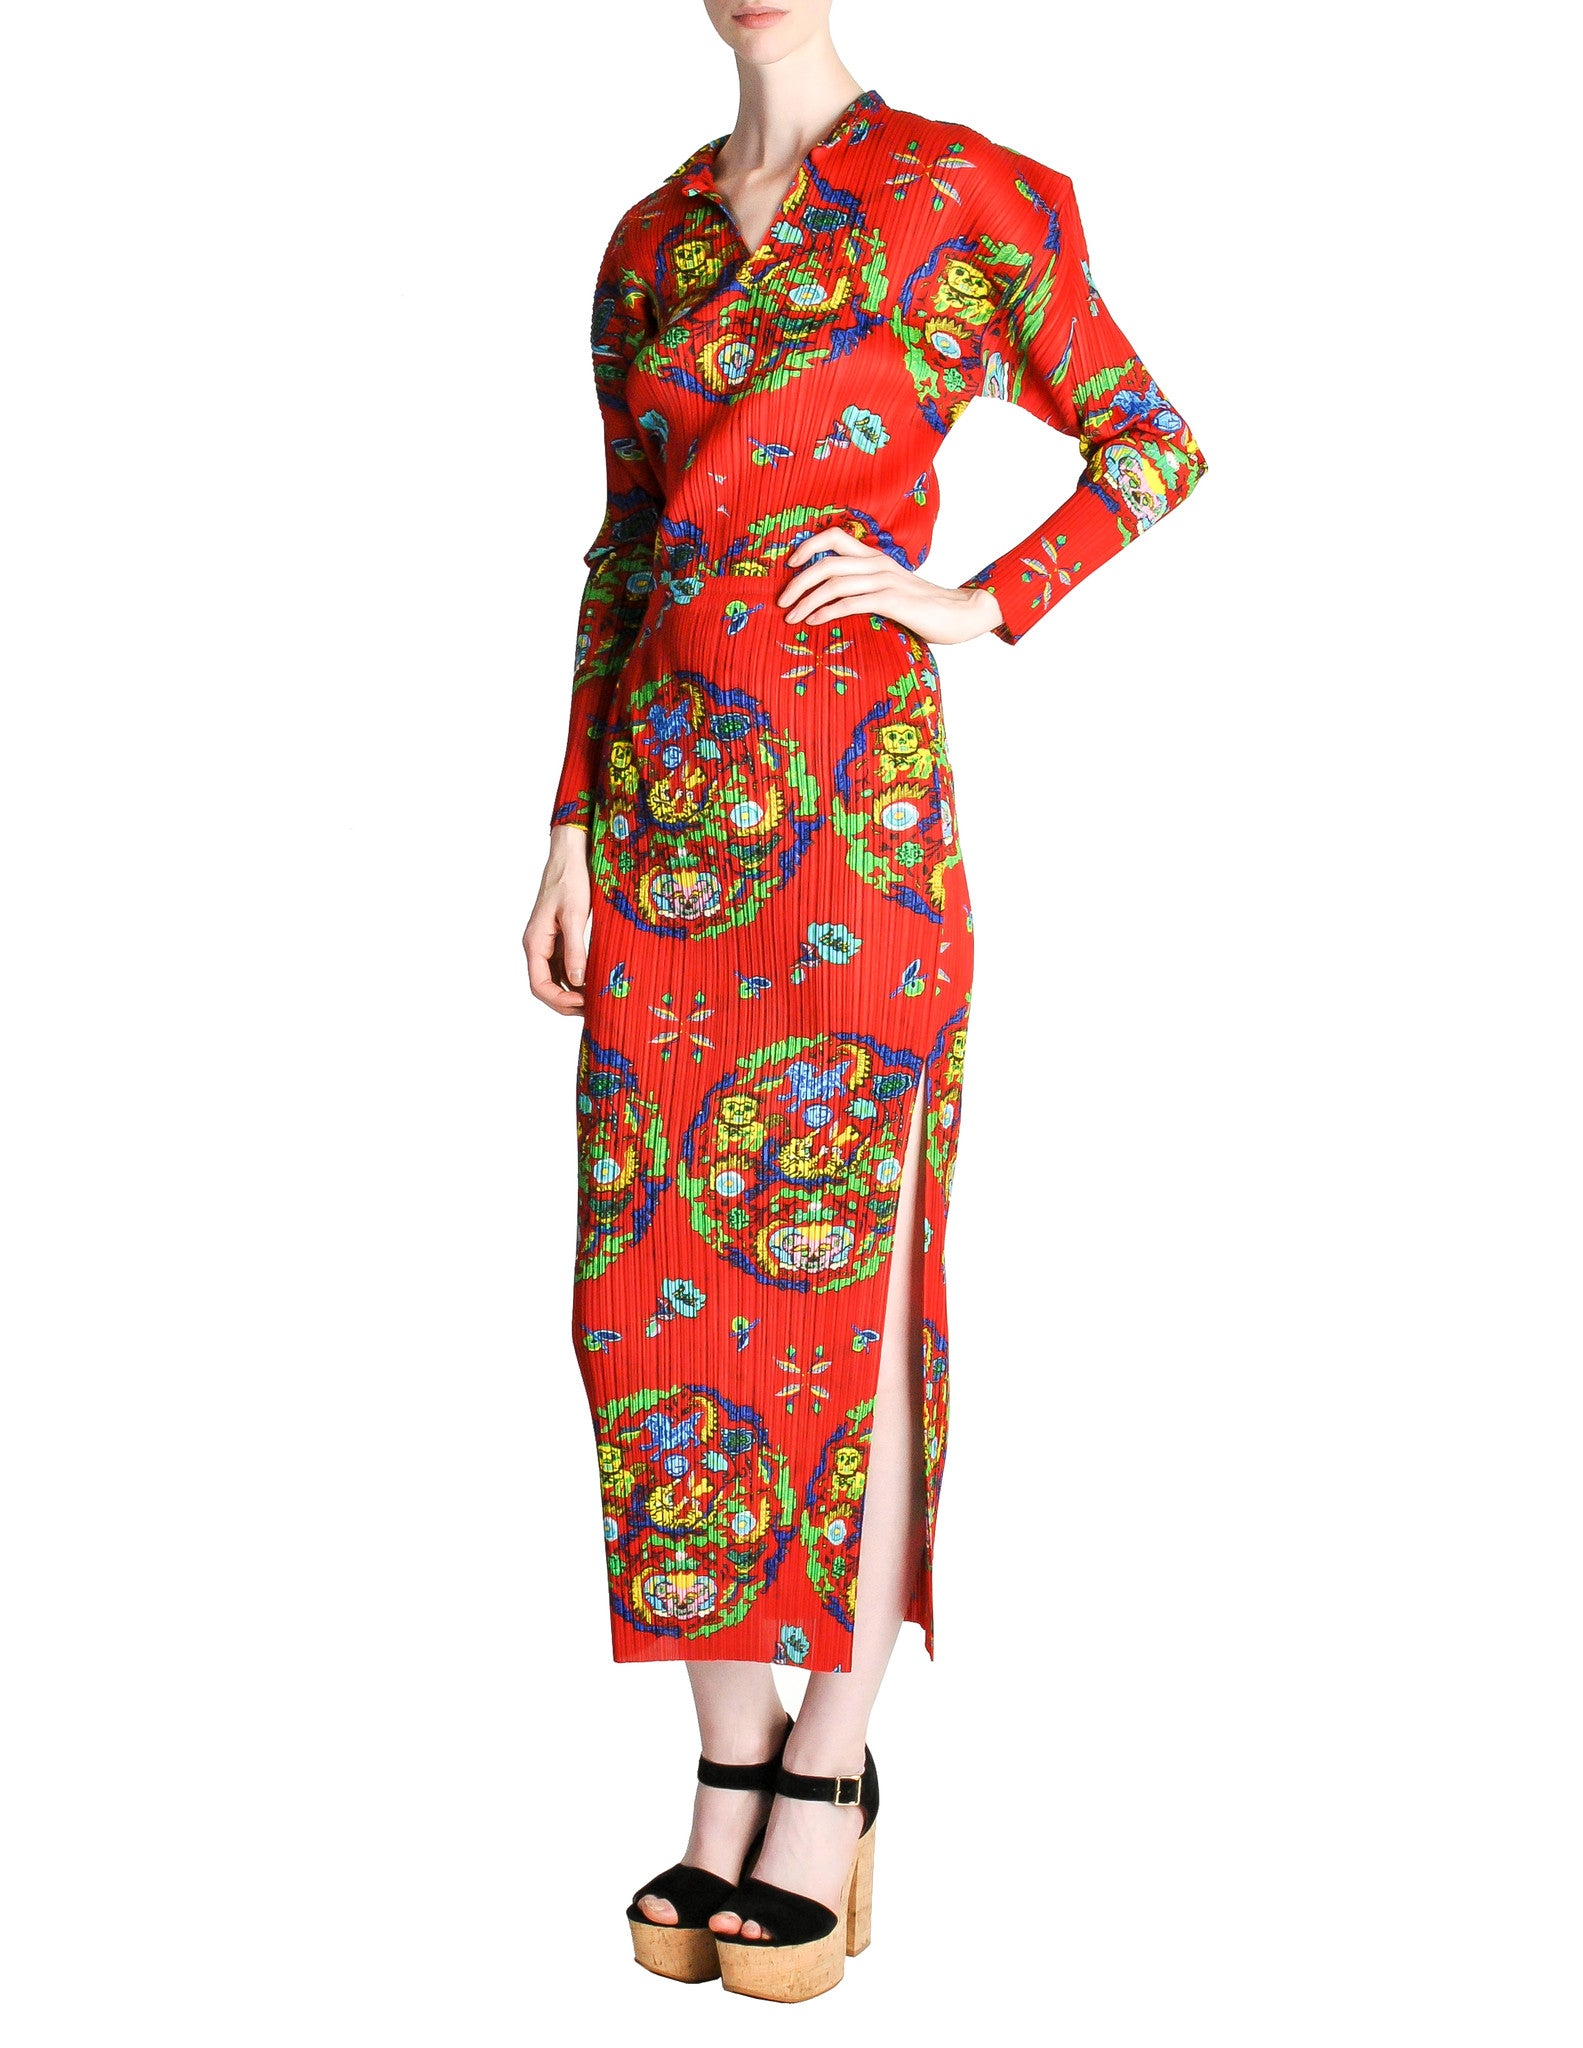 Issey Miyake Pleats Please Vintage Chinese Print Two Piece Top & Skirt Ensemble - Amarcord Vintage Fashion  - 1